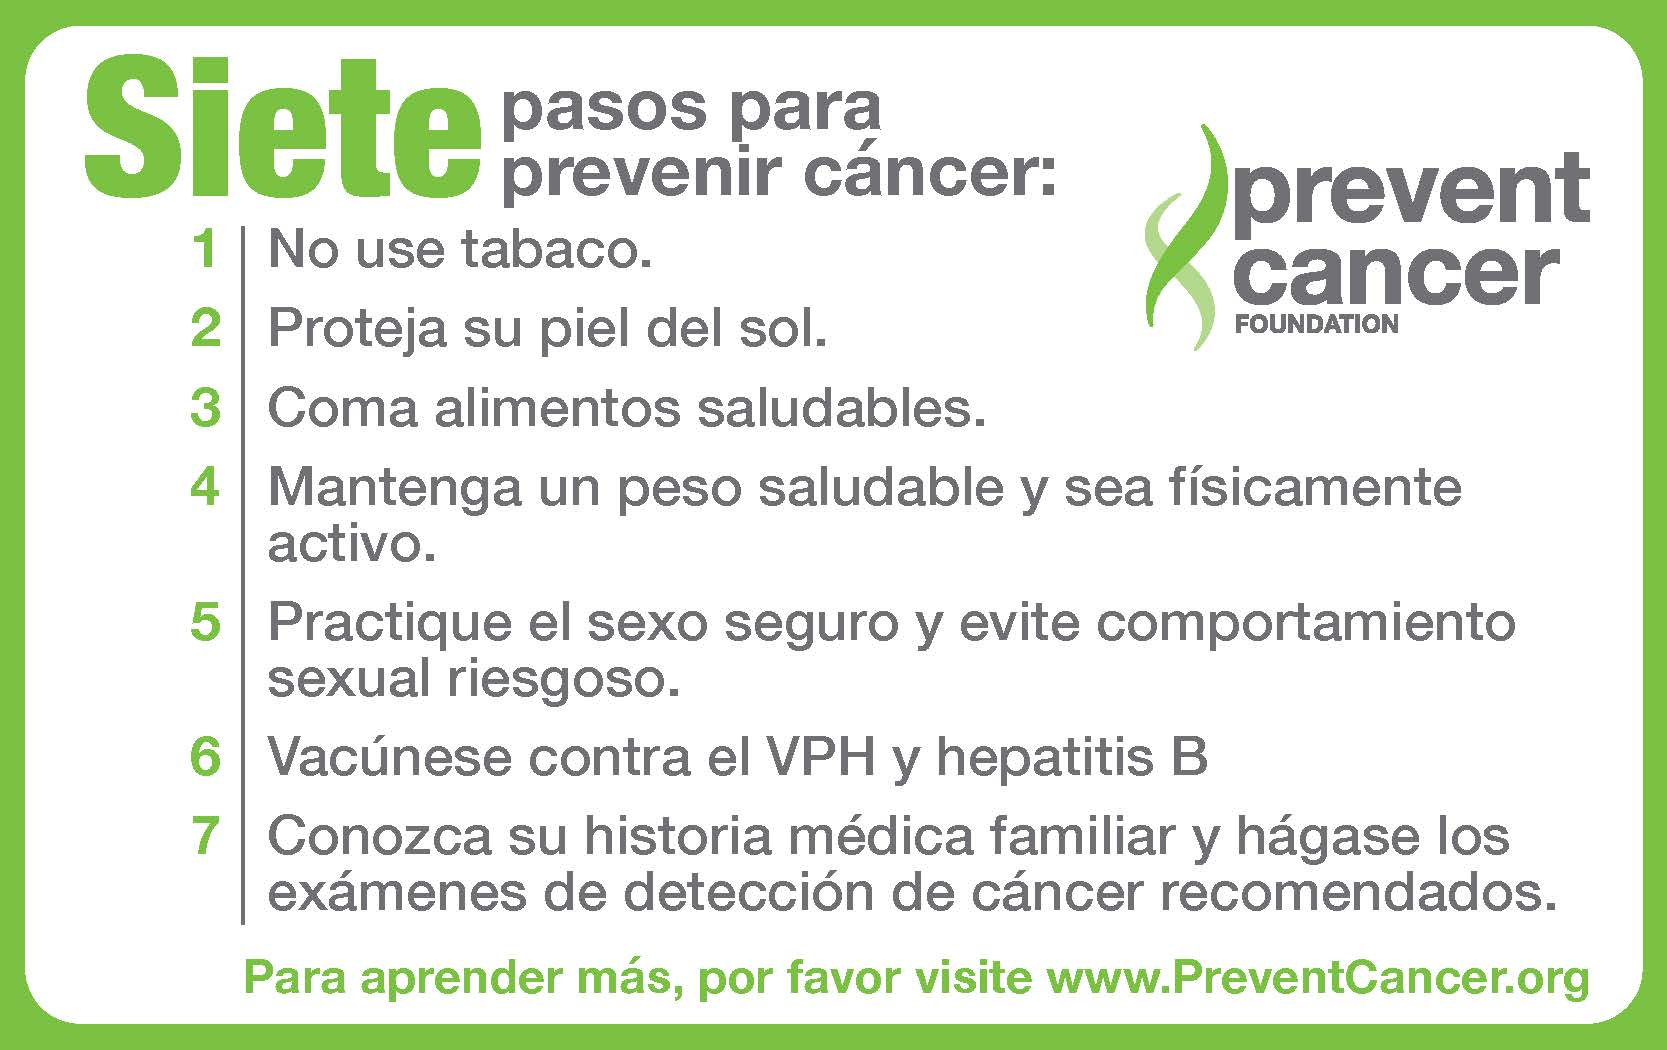 How to prevent cancer